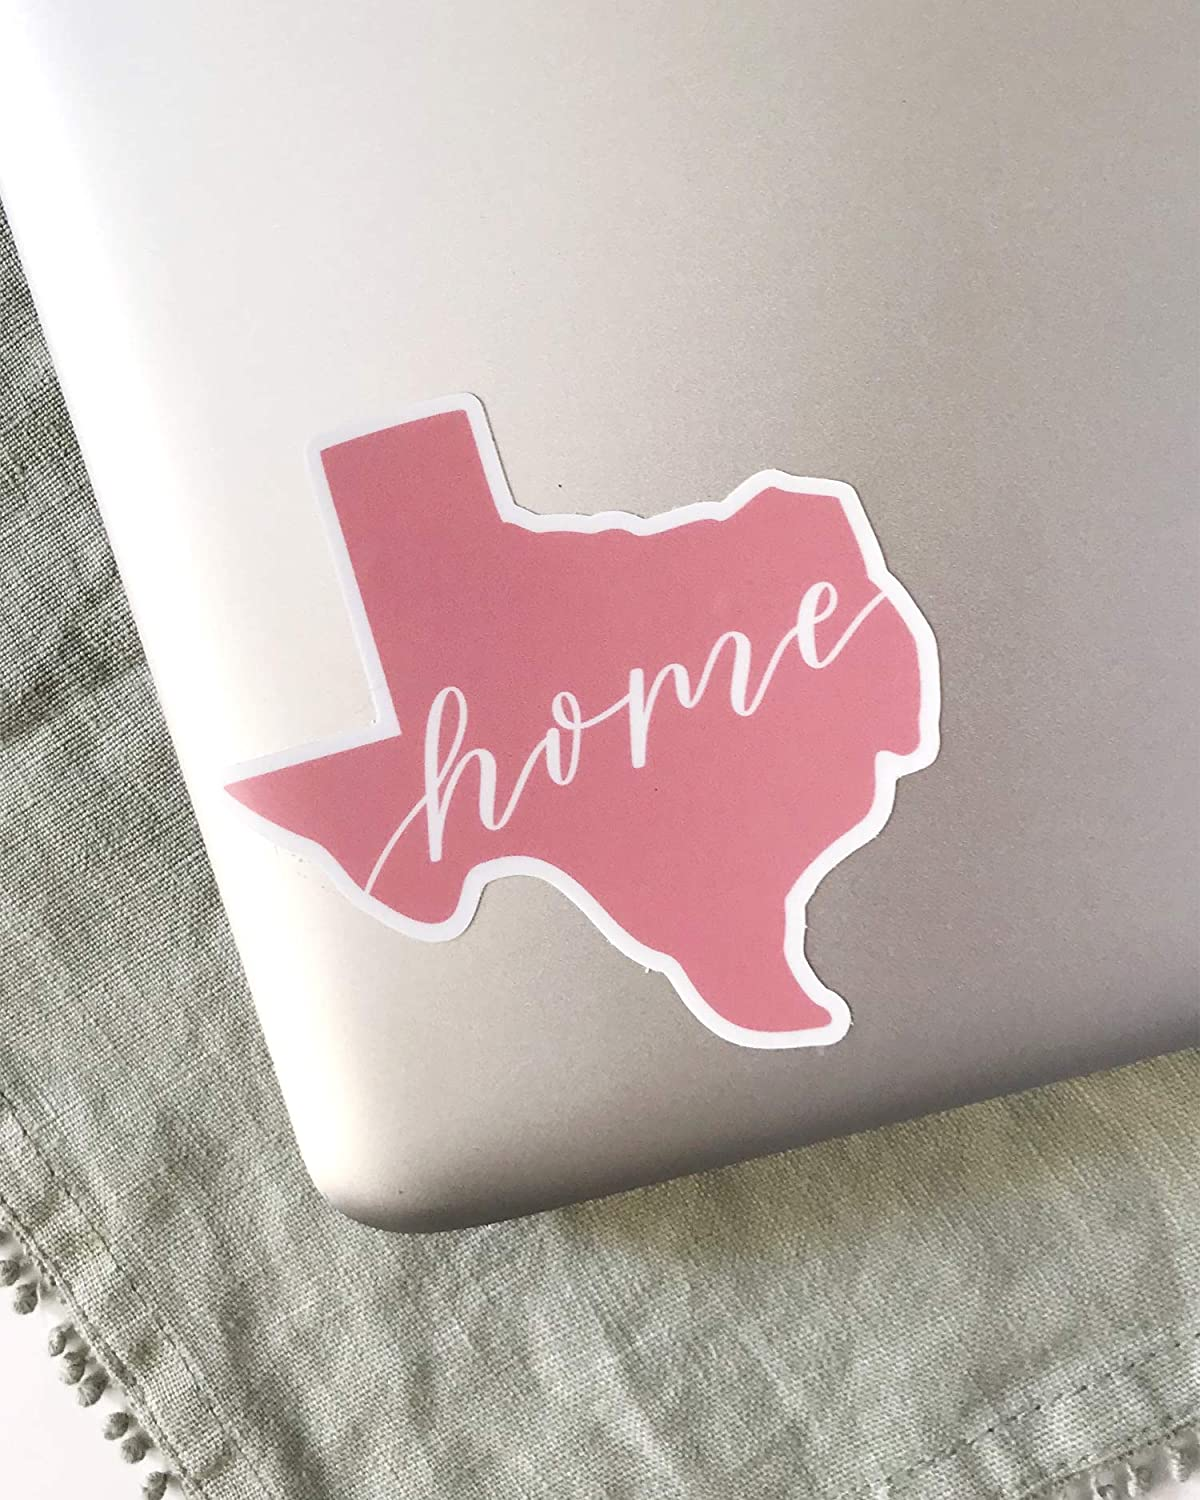 Girly Matte Vinyl Sticker for Water Bottle Car Pink Sticker in the Shape of Texas with Home Wording Laptop Size 3.5x3.5 in